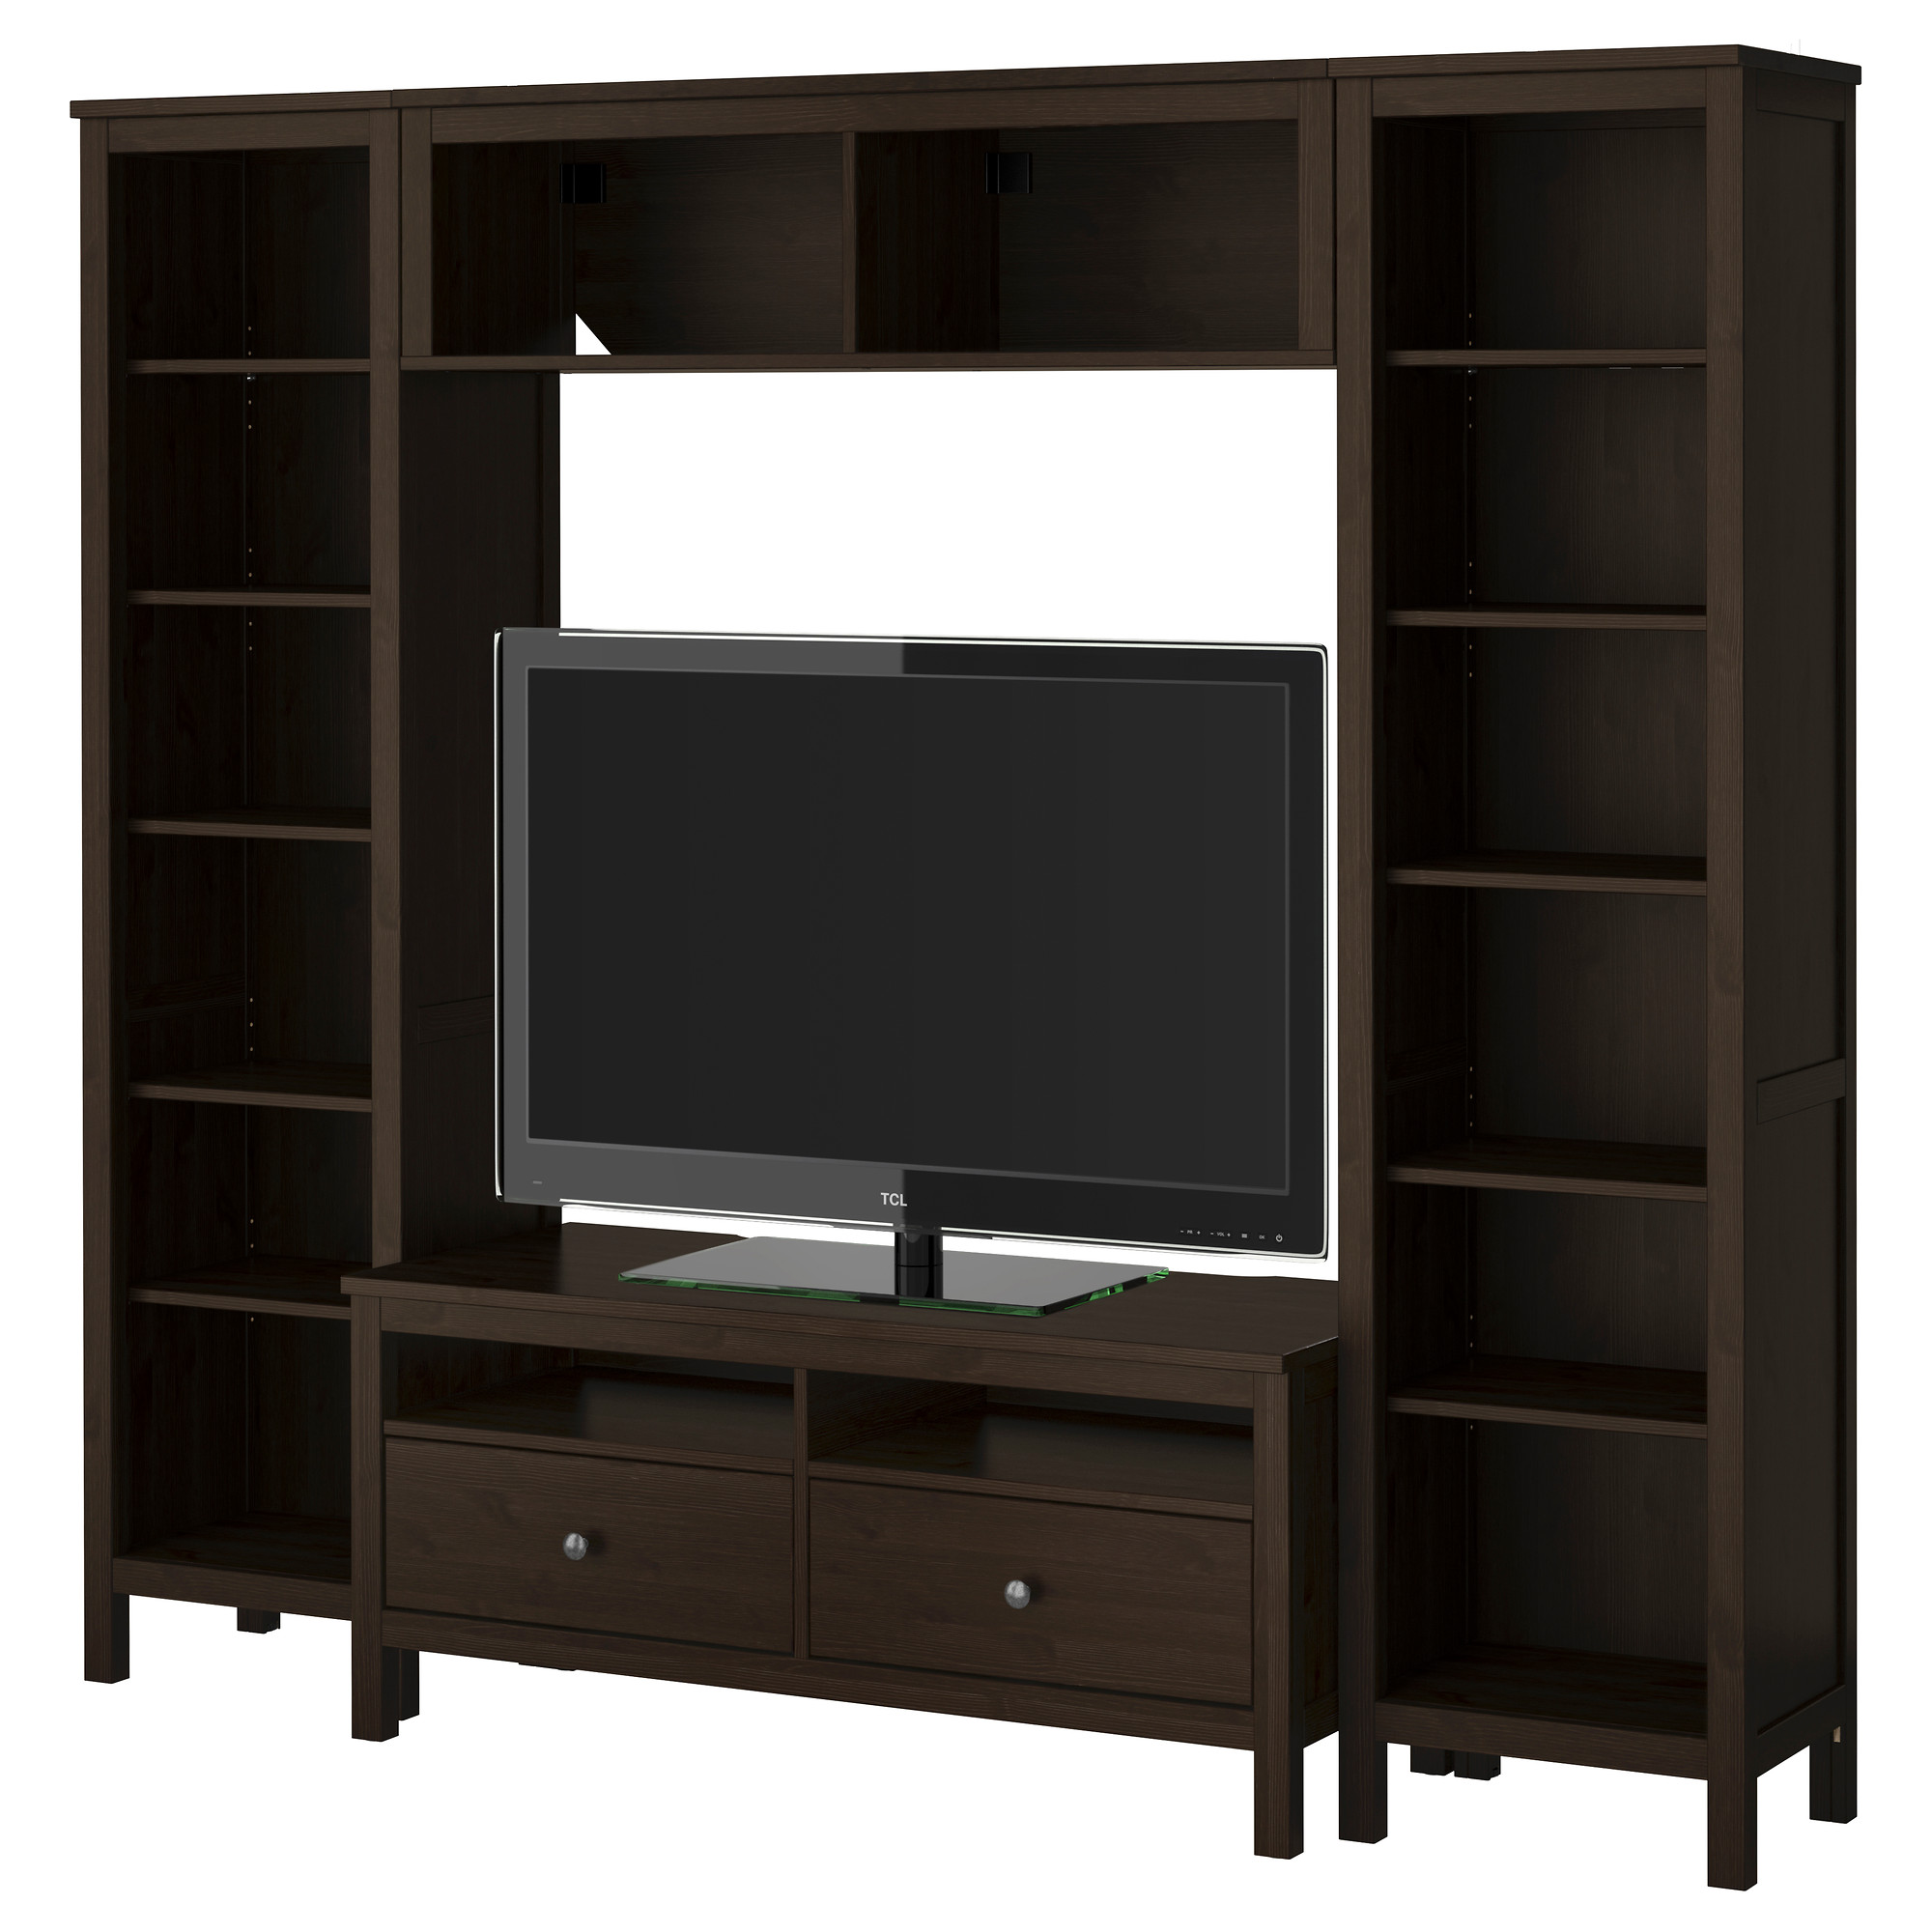 Hemnes Tv Stand Gray Brown : Ikea Hemnes Tv Stand Gray Brown 002 786271jpg Pictures